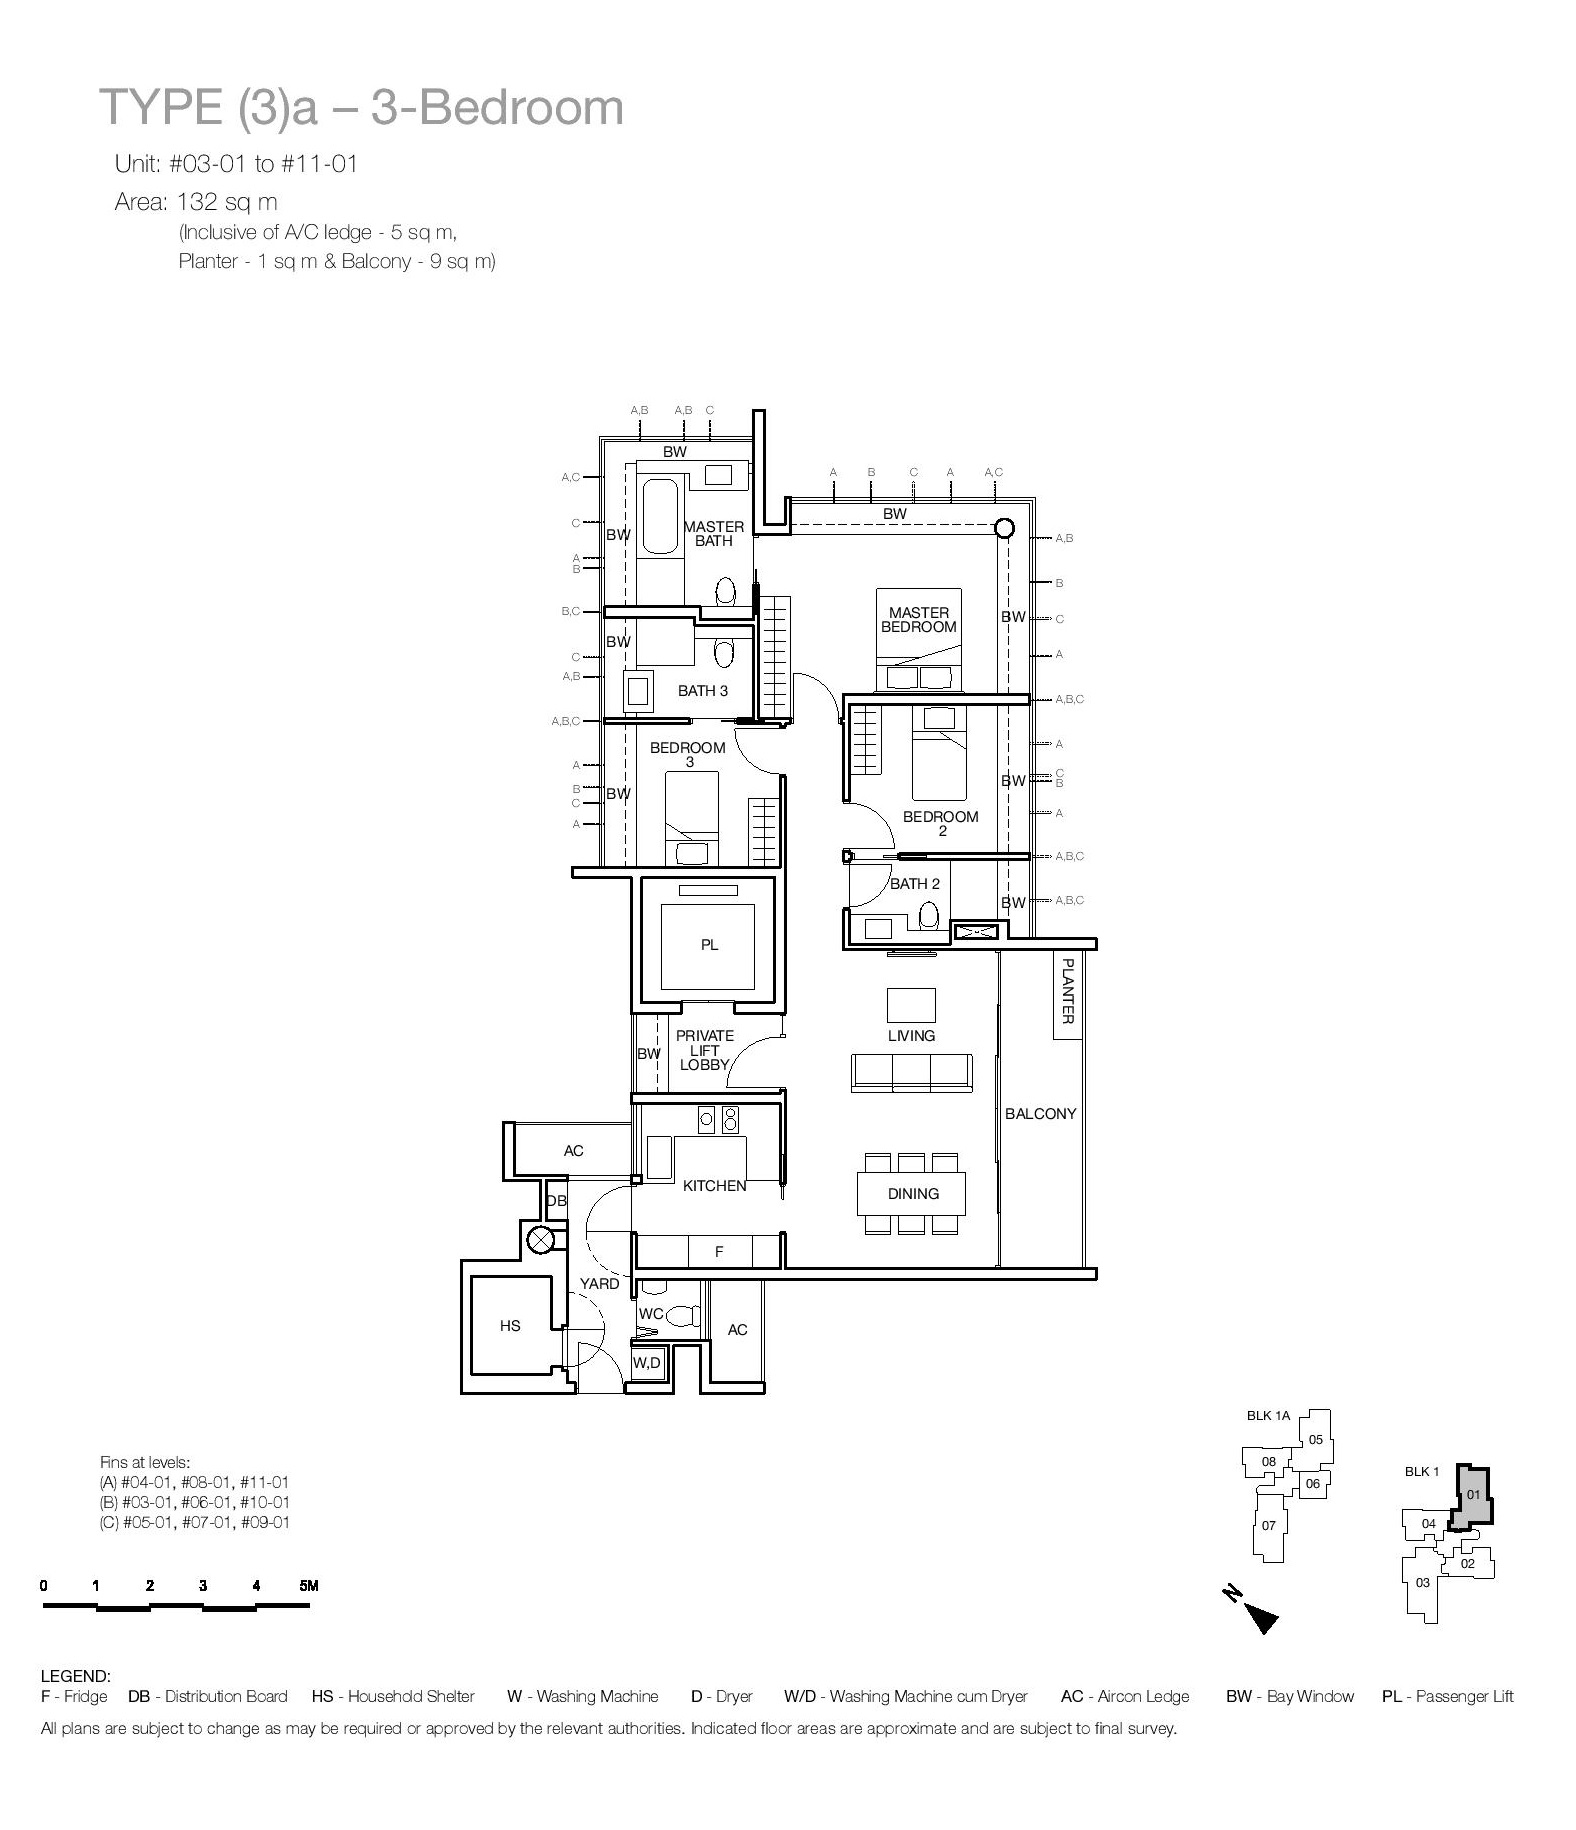 One Balmoral 3 Bedroom Floor Type (3)a Plans